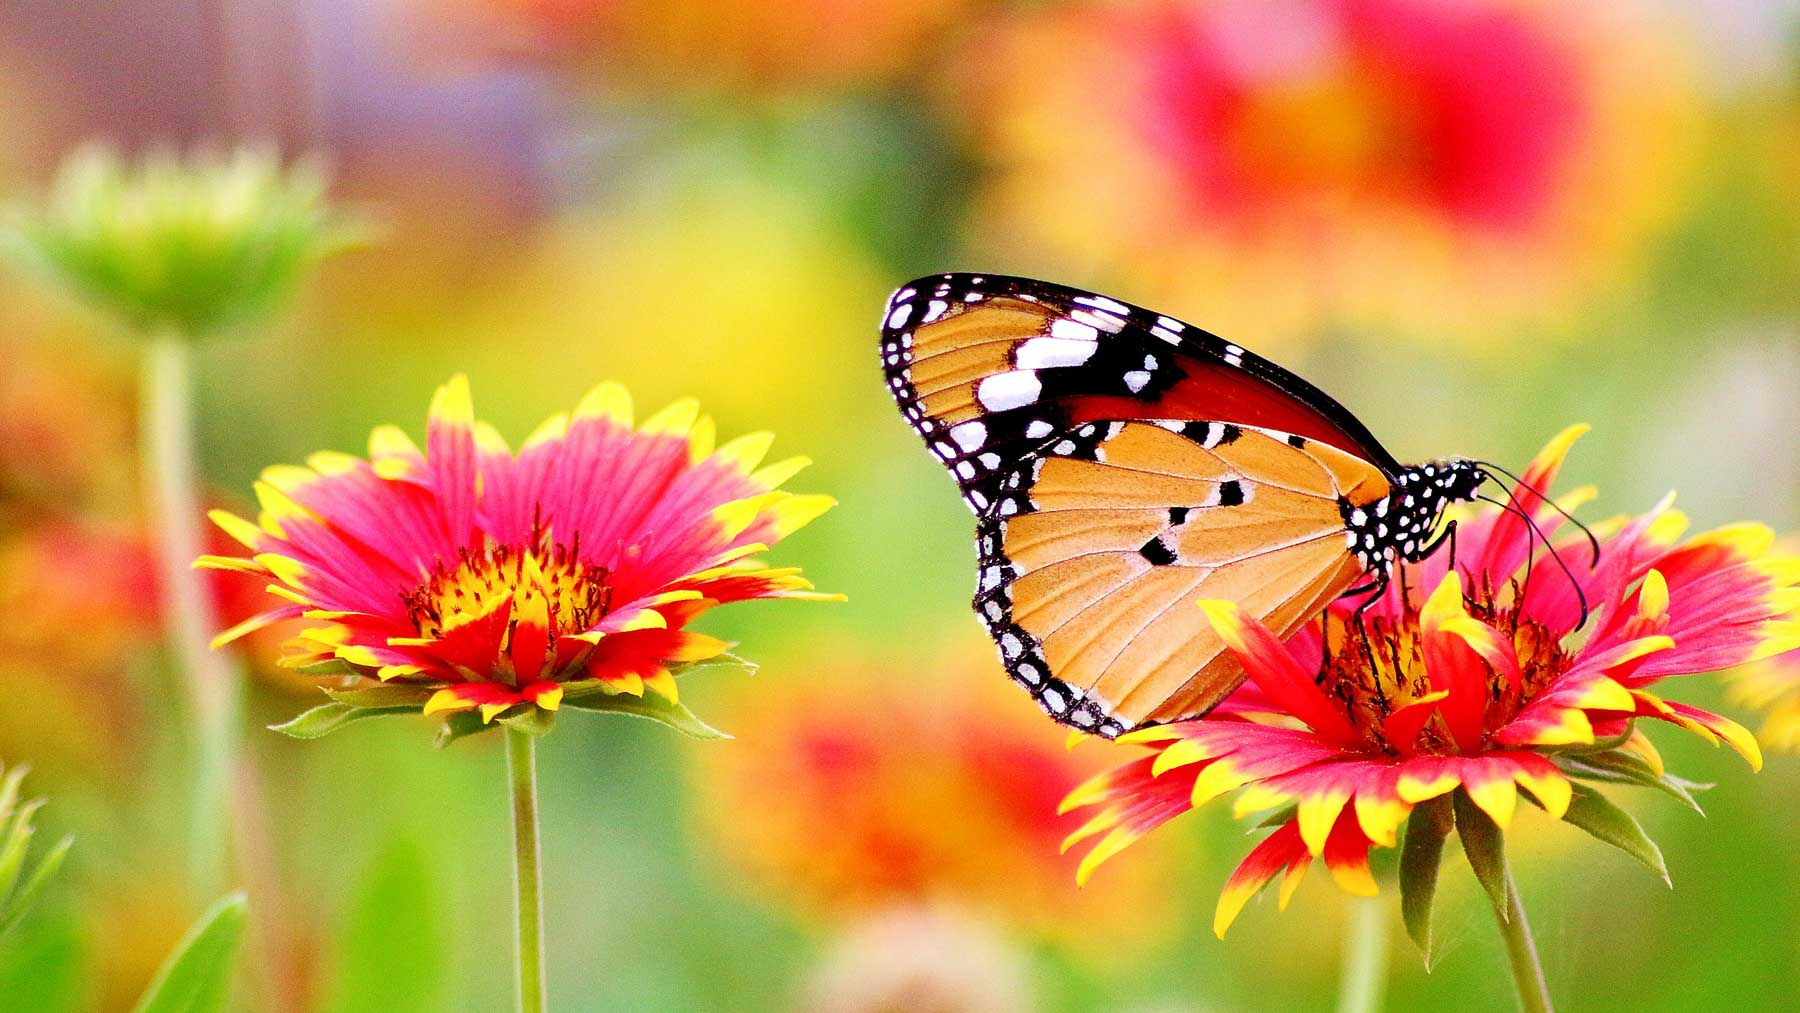 beautiful inspiring flowers and butterfly